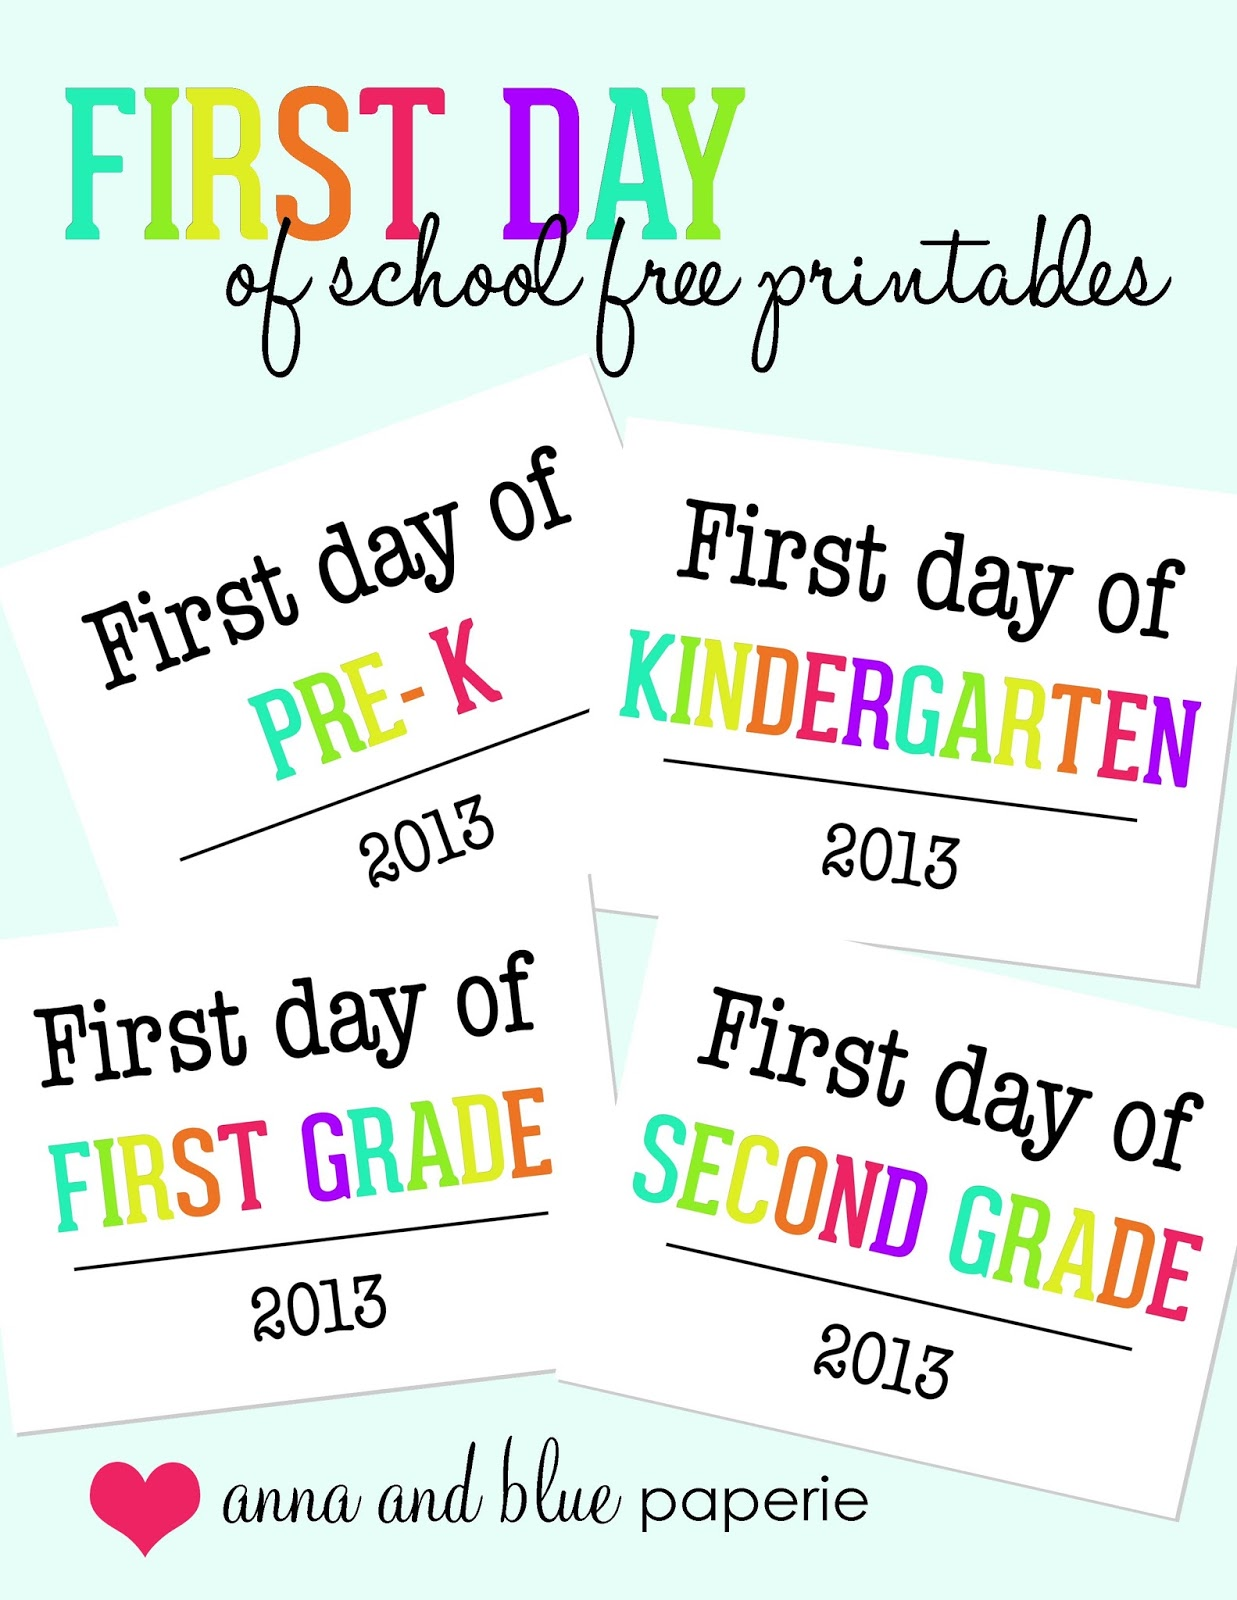 Worksheets First Day First Grade Worksheets first day of school math worksheets for grade free printable back to